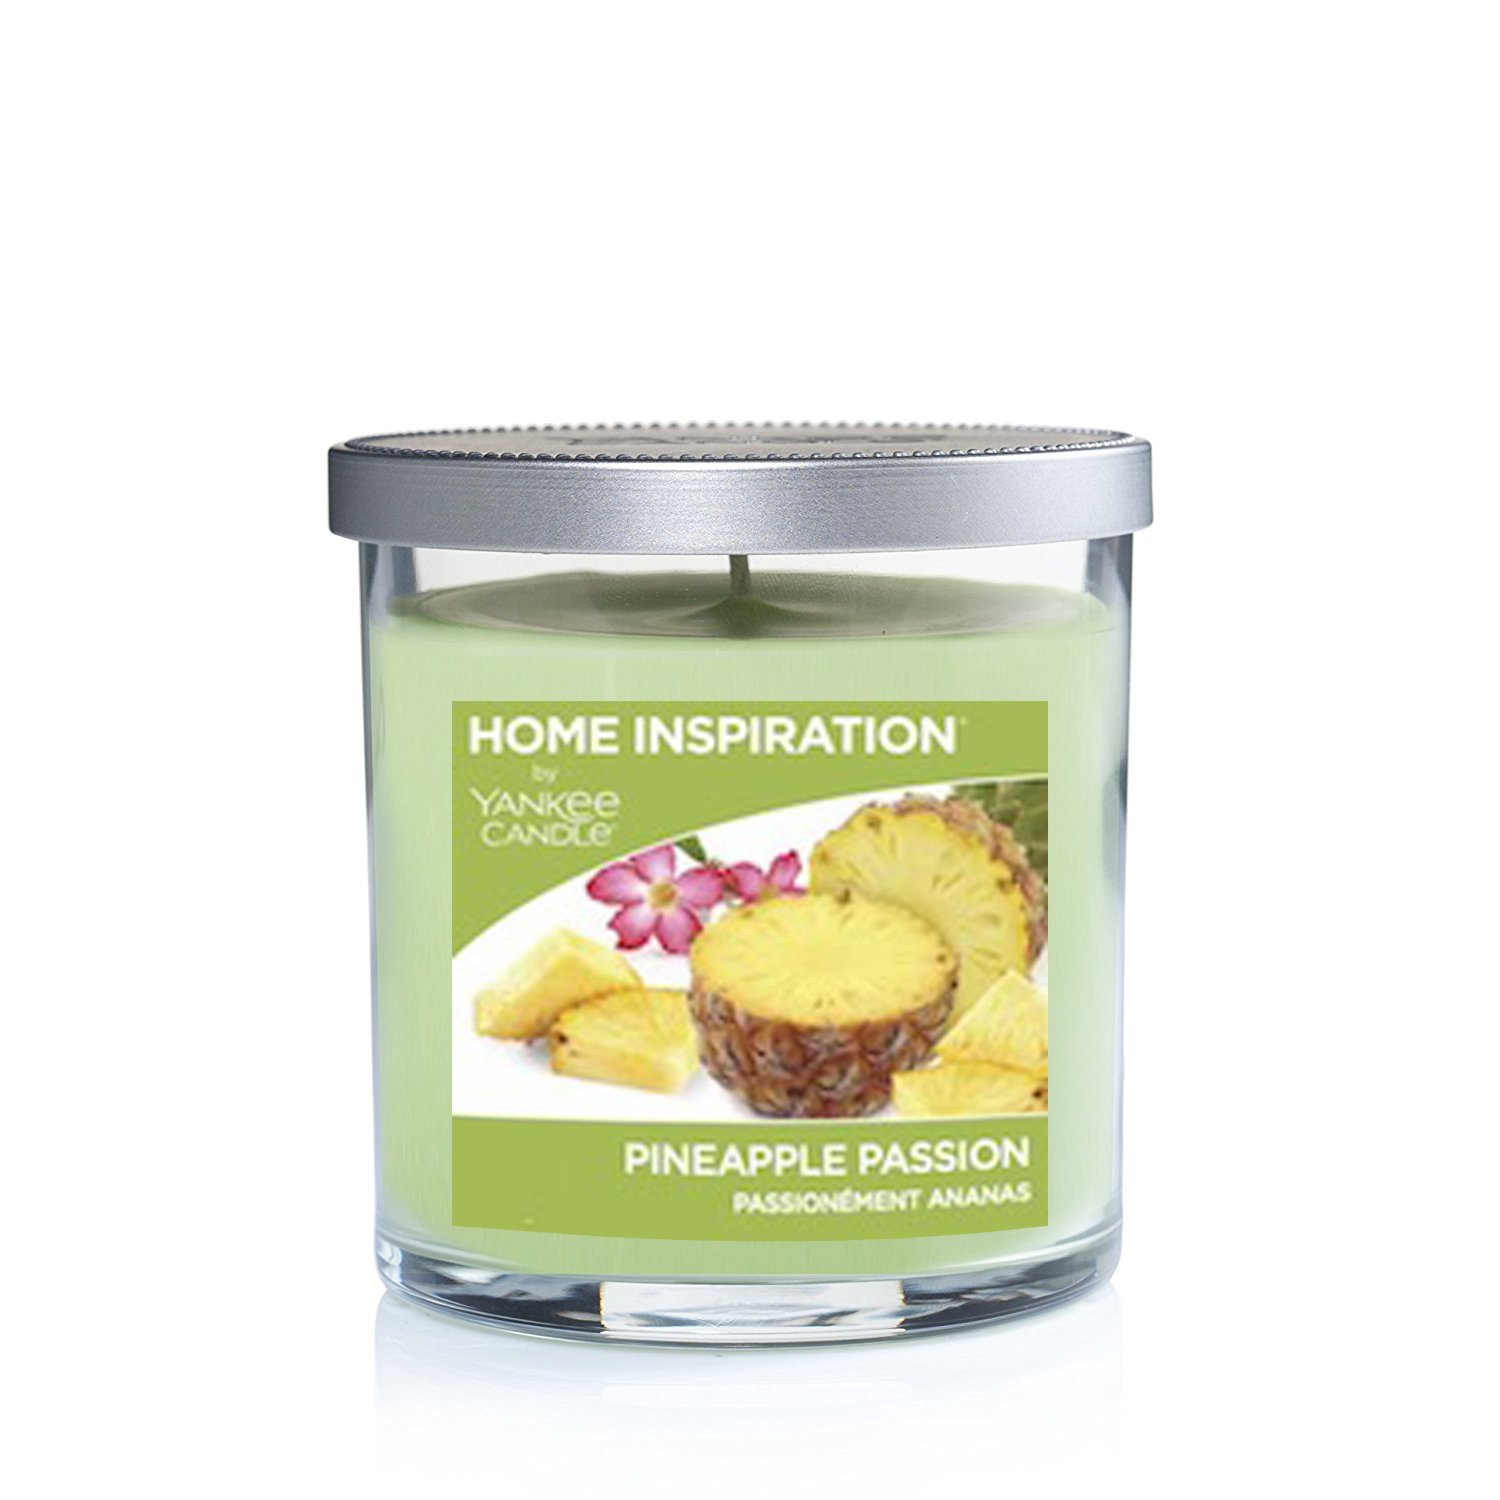 Home Inspiration by Yankee Candle home fragrance aromatherapy luxury scented perfumed Candle Glass Jar with Lid - Approx. burn time 40 hours - 2 wicks (Lemon Meringue)